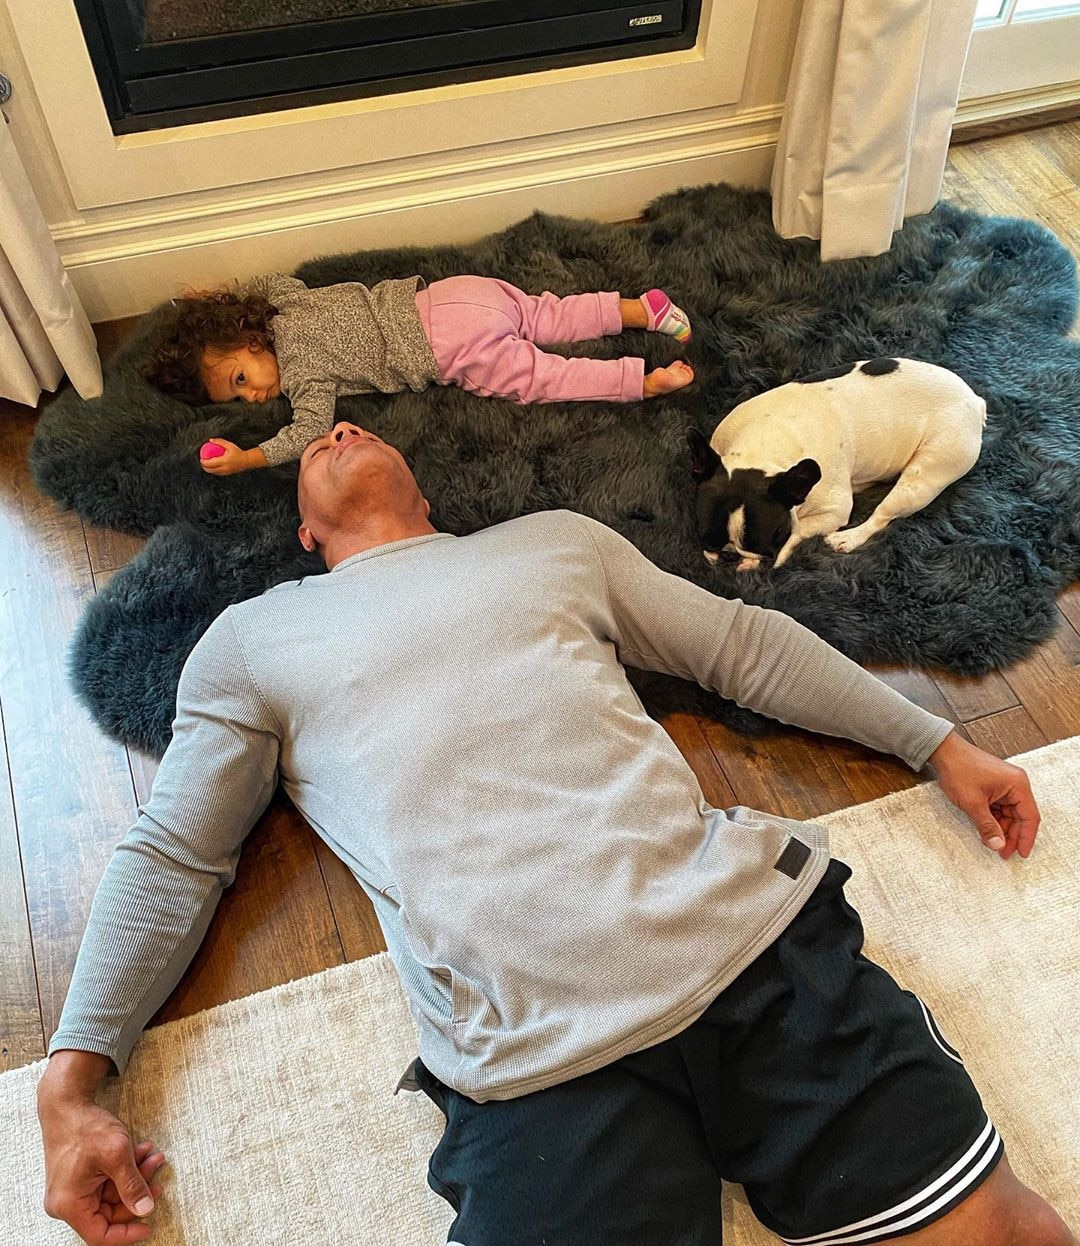 Dwayne Johnson, Thanksgiving 2019